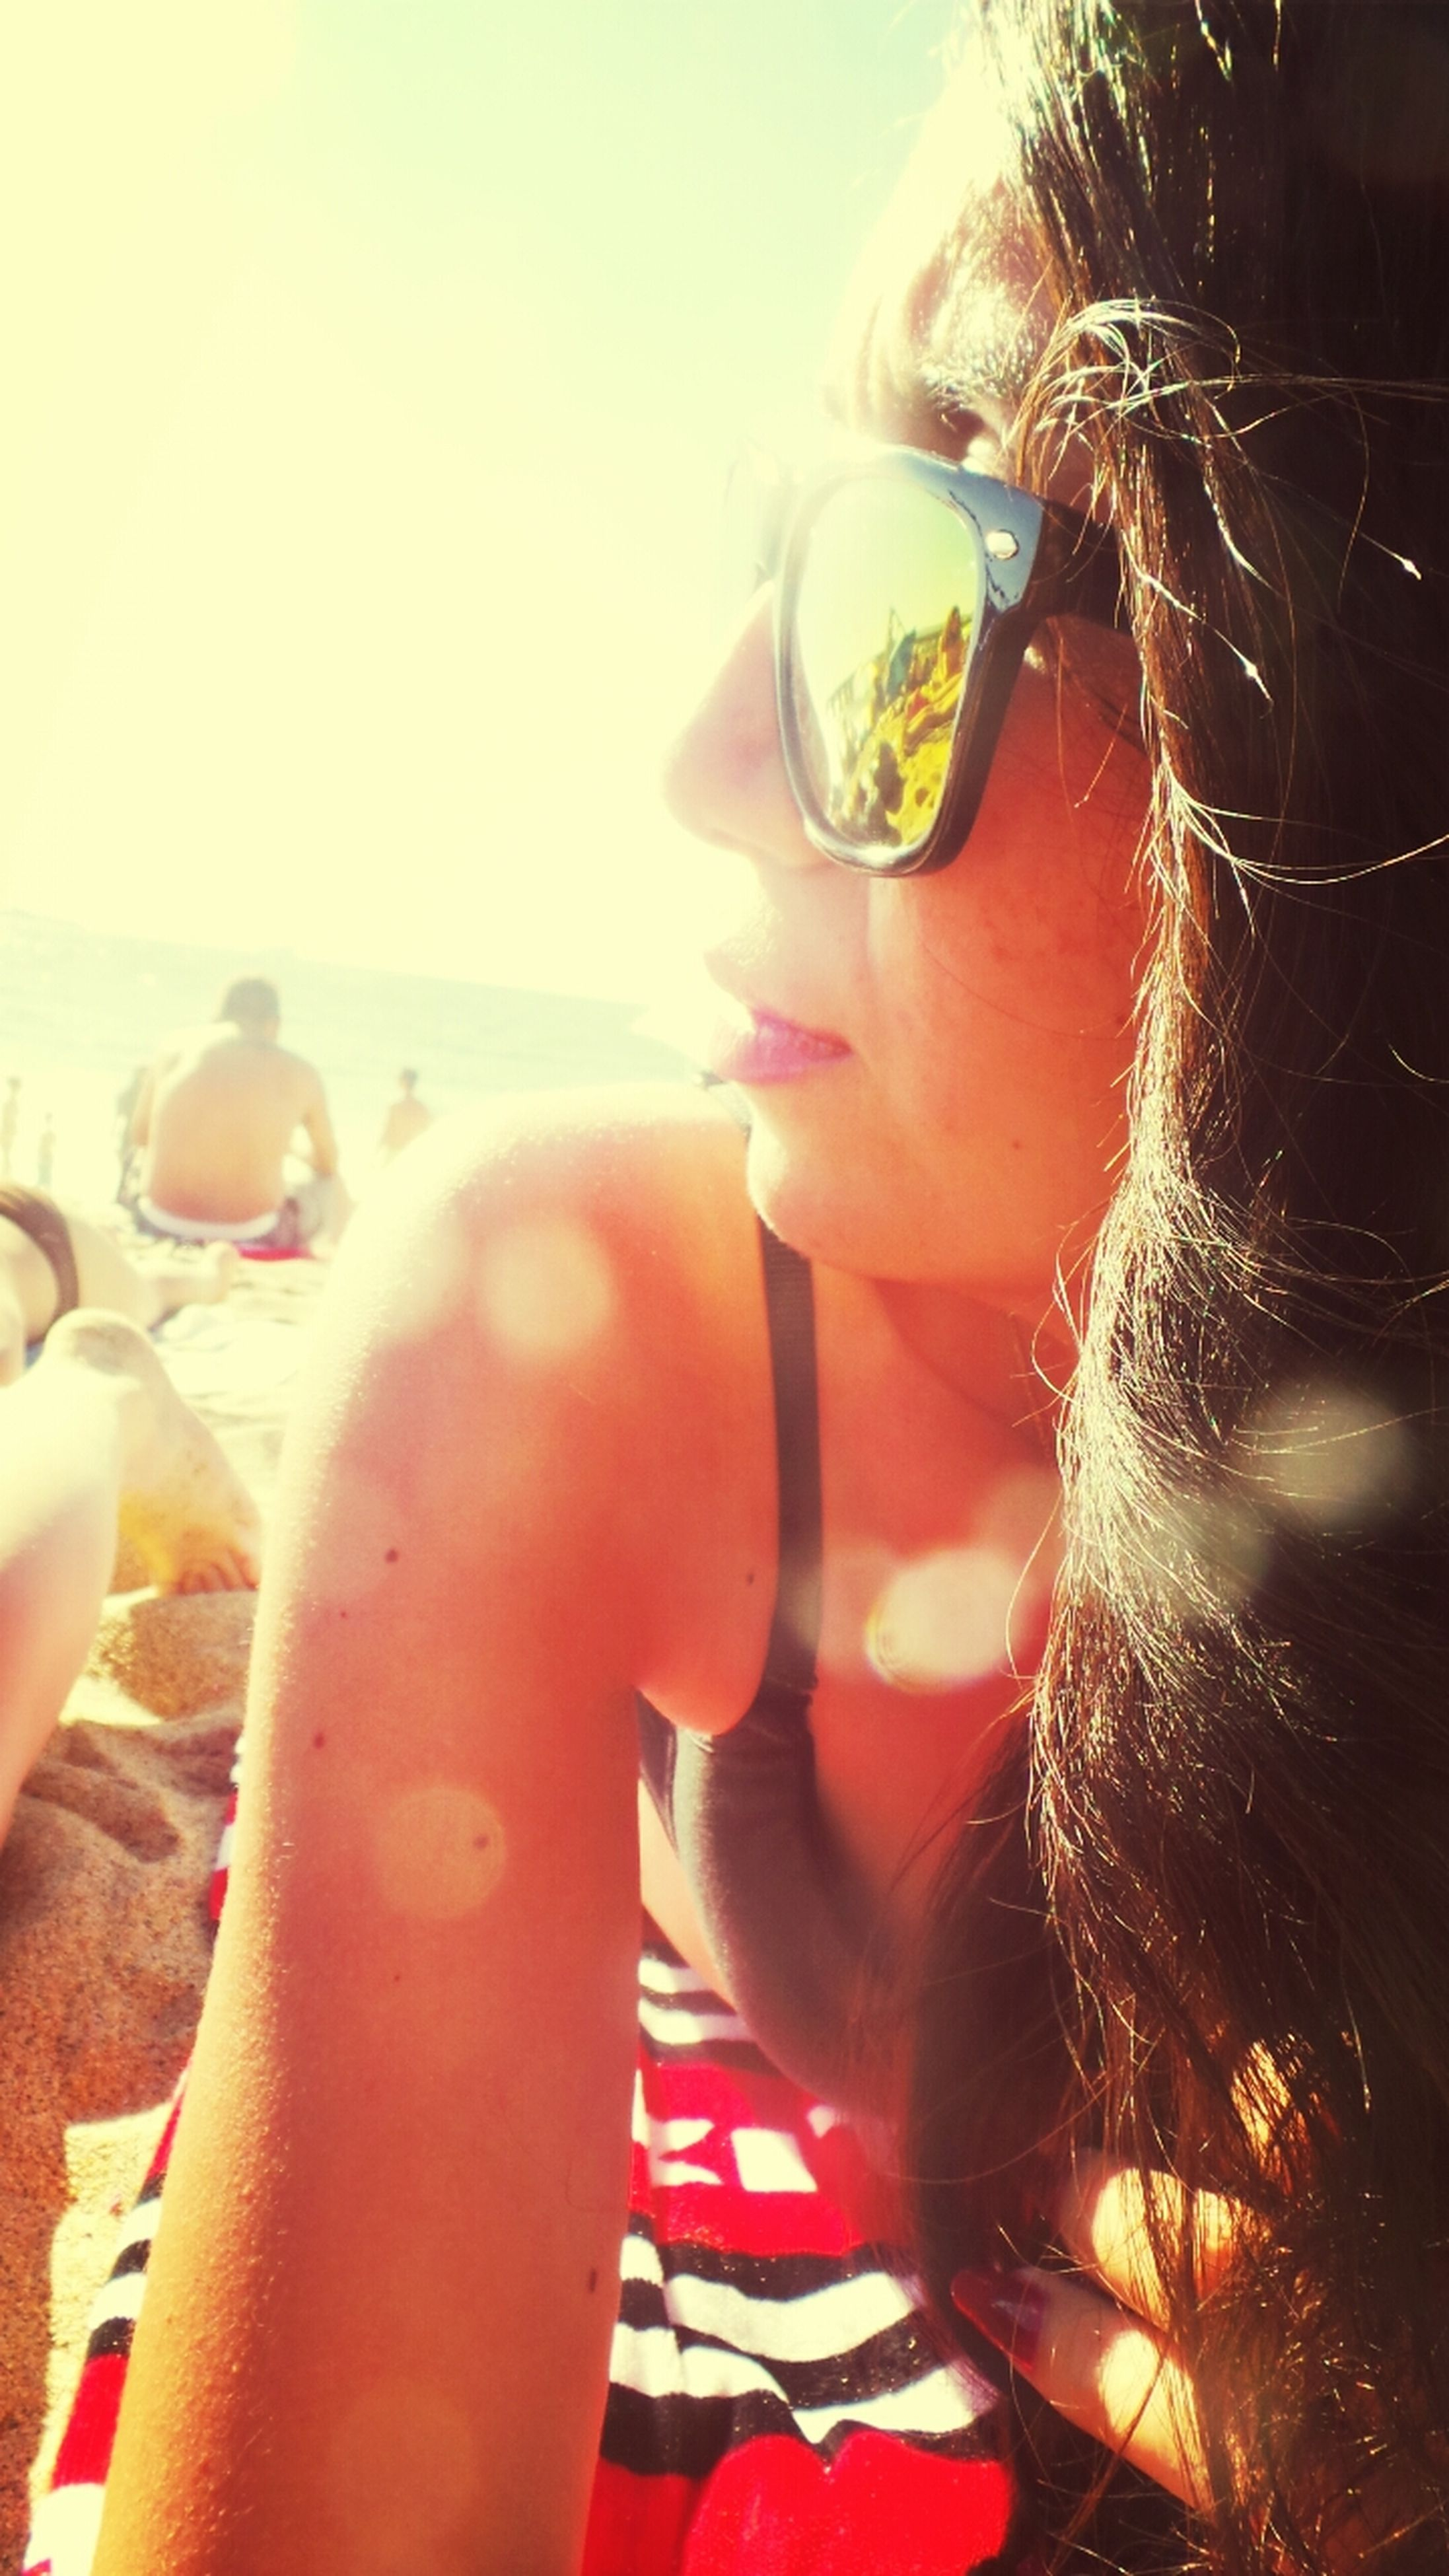 lifestyles, leisure activity, headshot, sunglasses, sunlight, holding, person, young adult, close-up, young women, sky, sun, lens flare, part of, outdoors, drink, focus on foreground